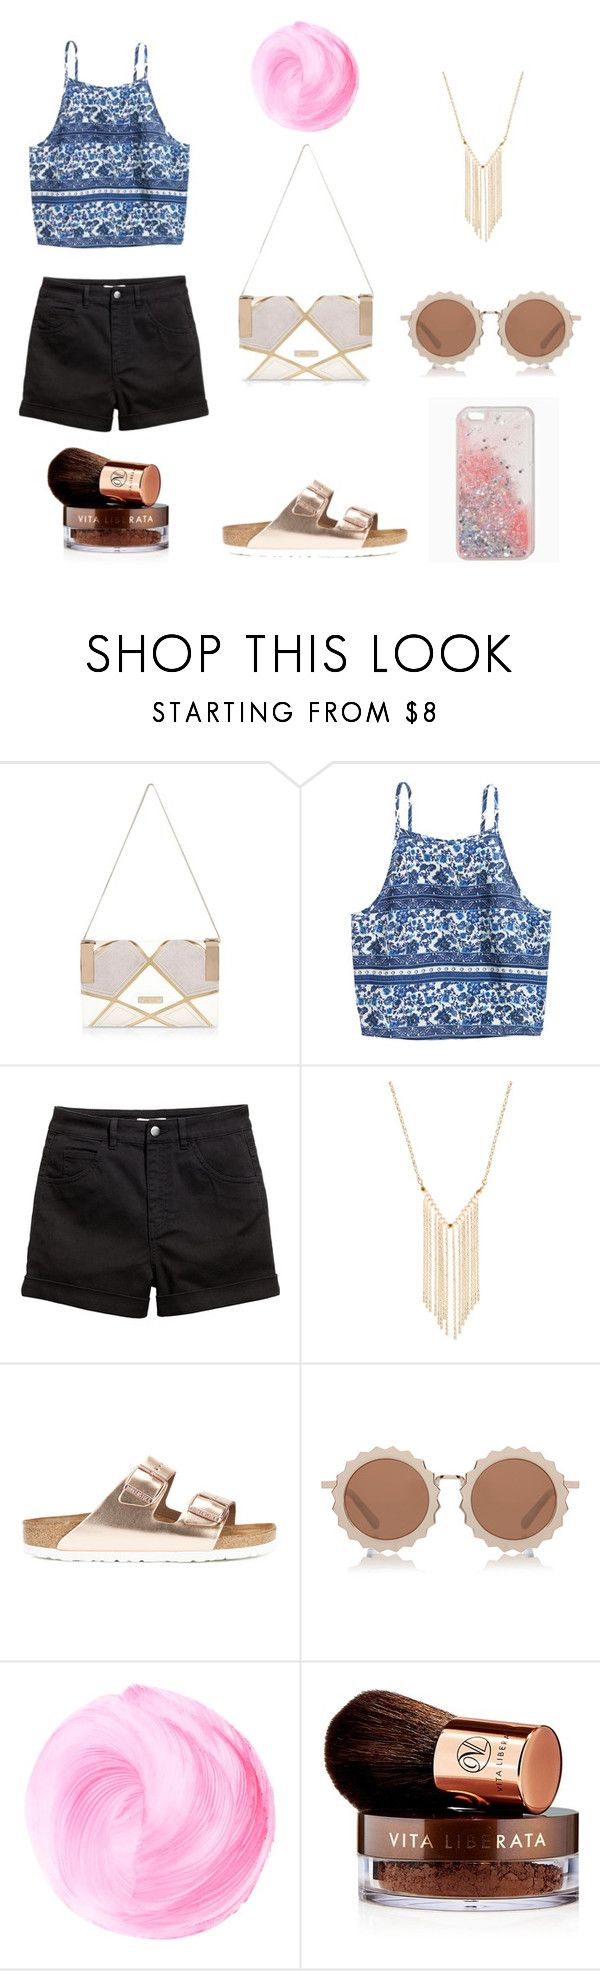 """""""How to wear a patchwork handbag"""" by sylarpembo ❤ liked on Polyvore featuring River Island, Gemelli, Birkenstock, House of Holland and Vita Liberata"""